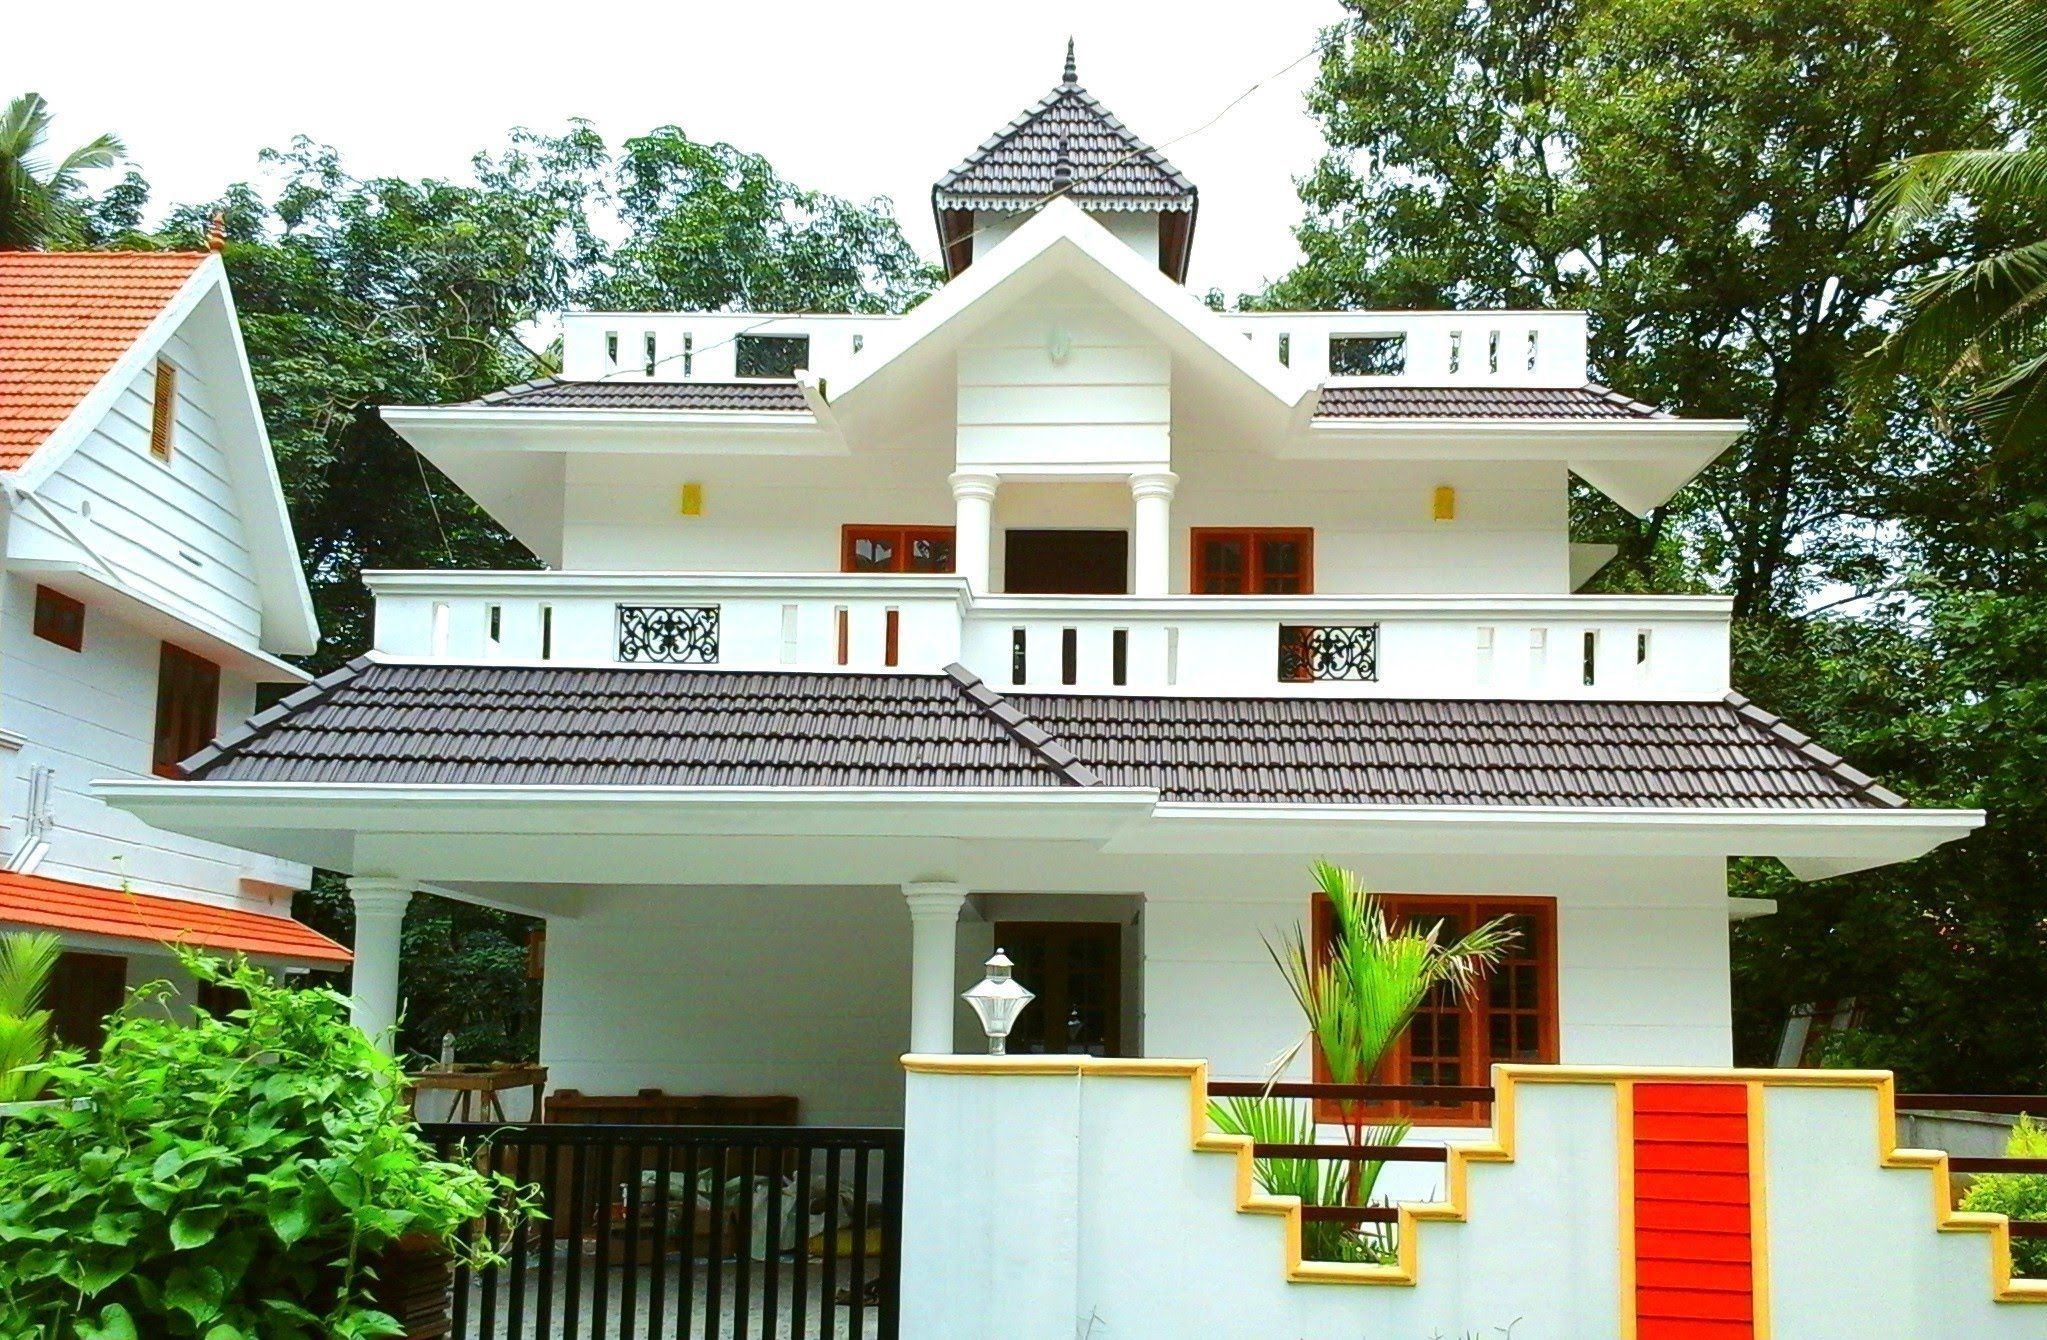 1,700 Sq Ft, Medium Budget House for Sale in Angamaly, Kochi, Kerala ...